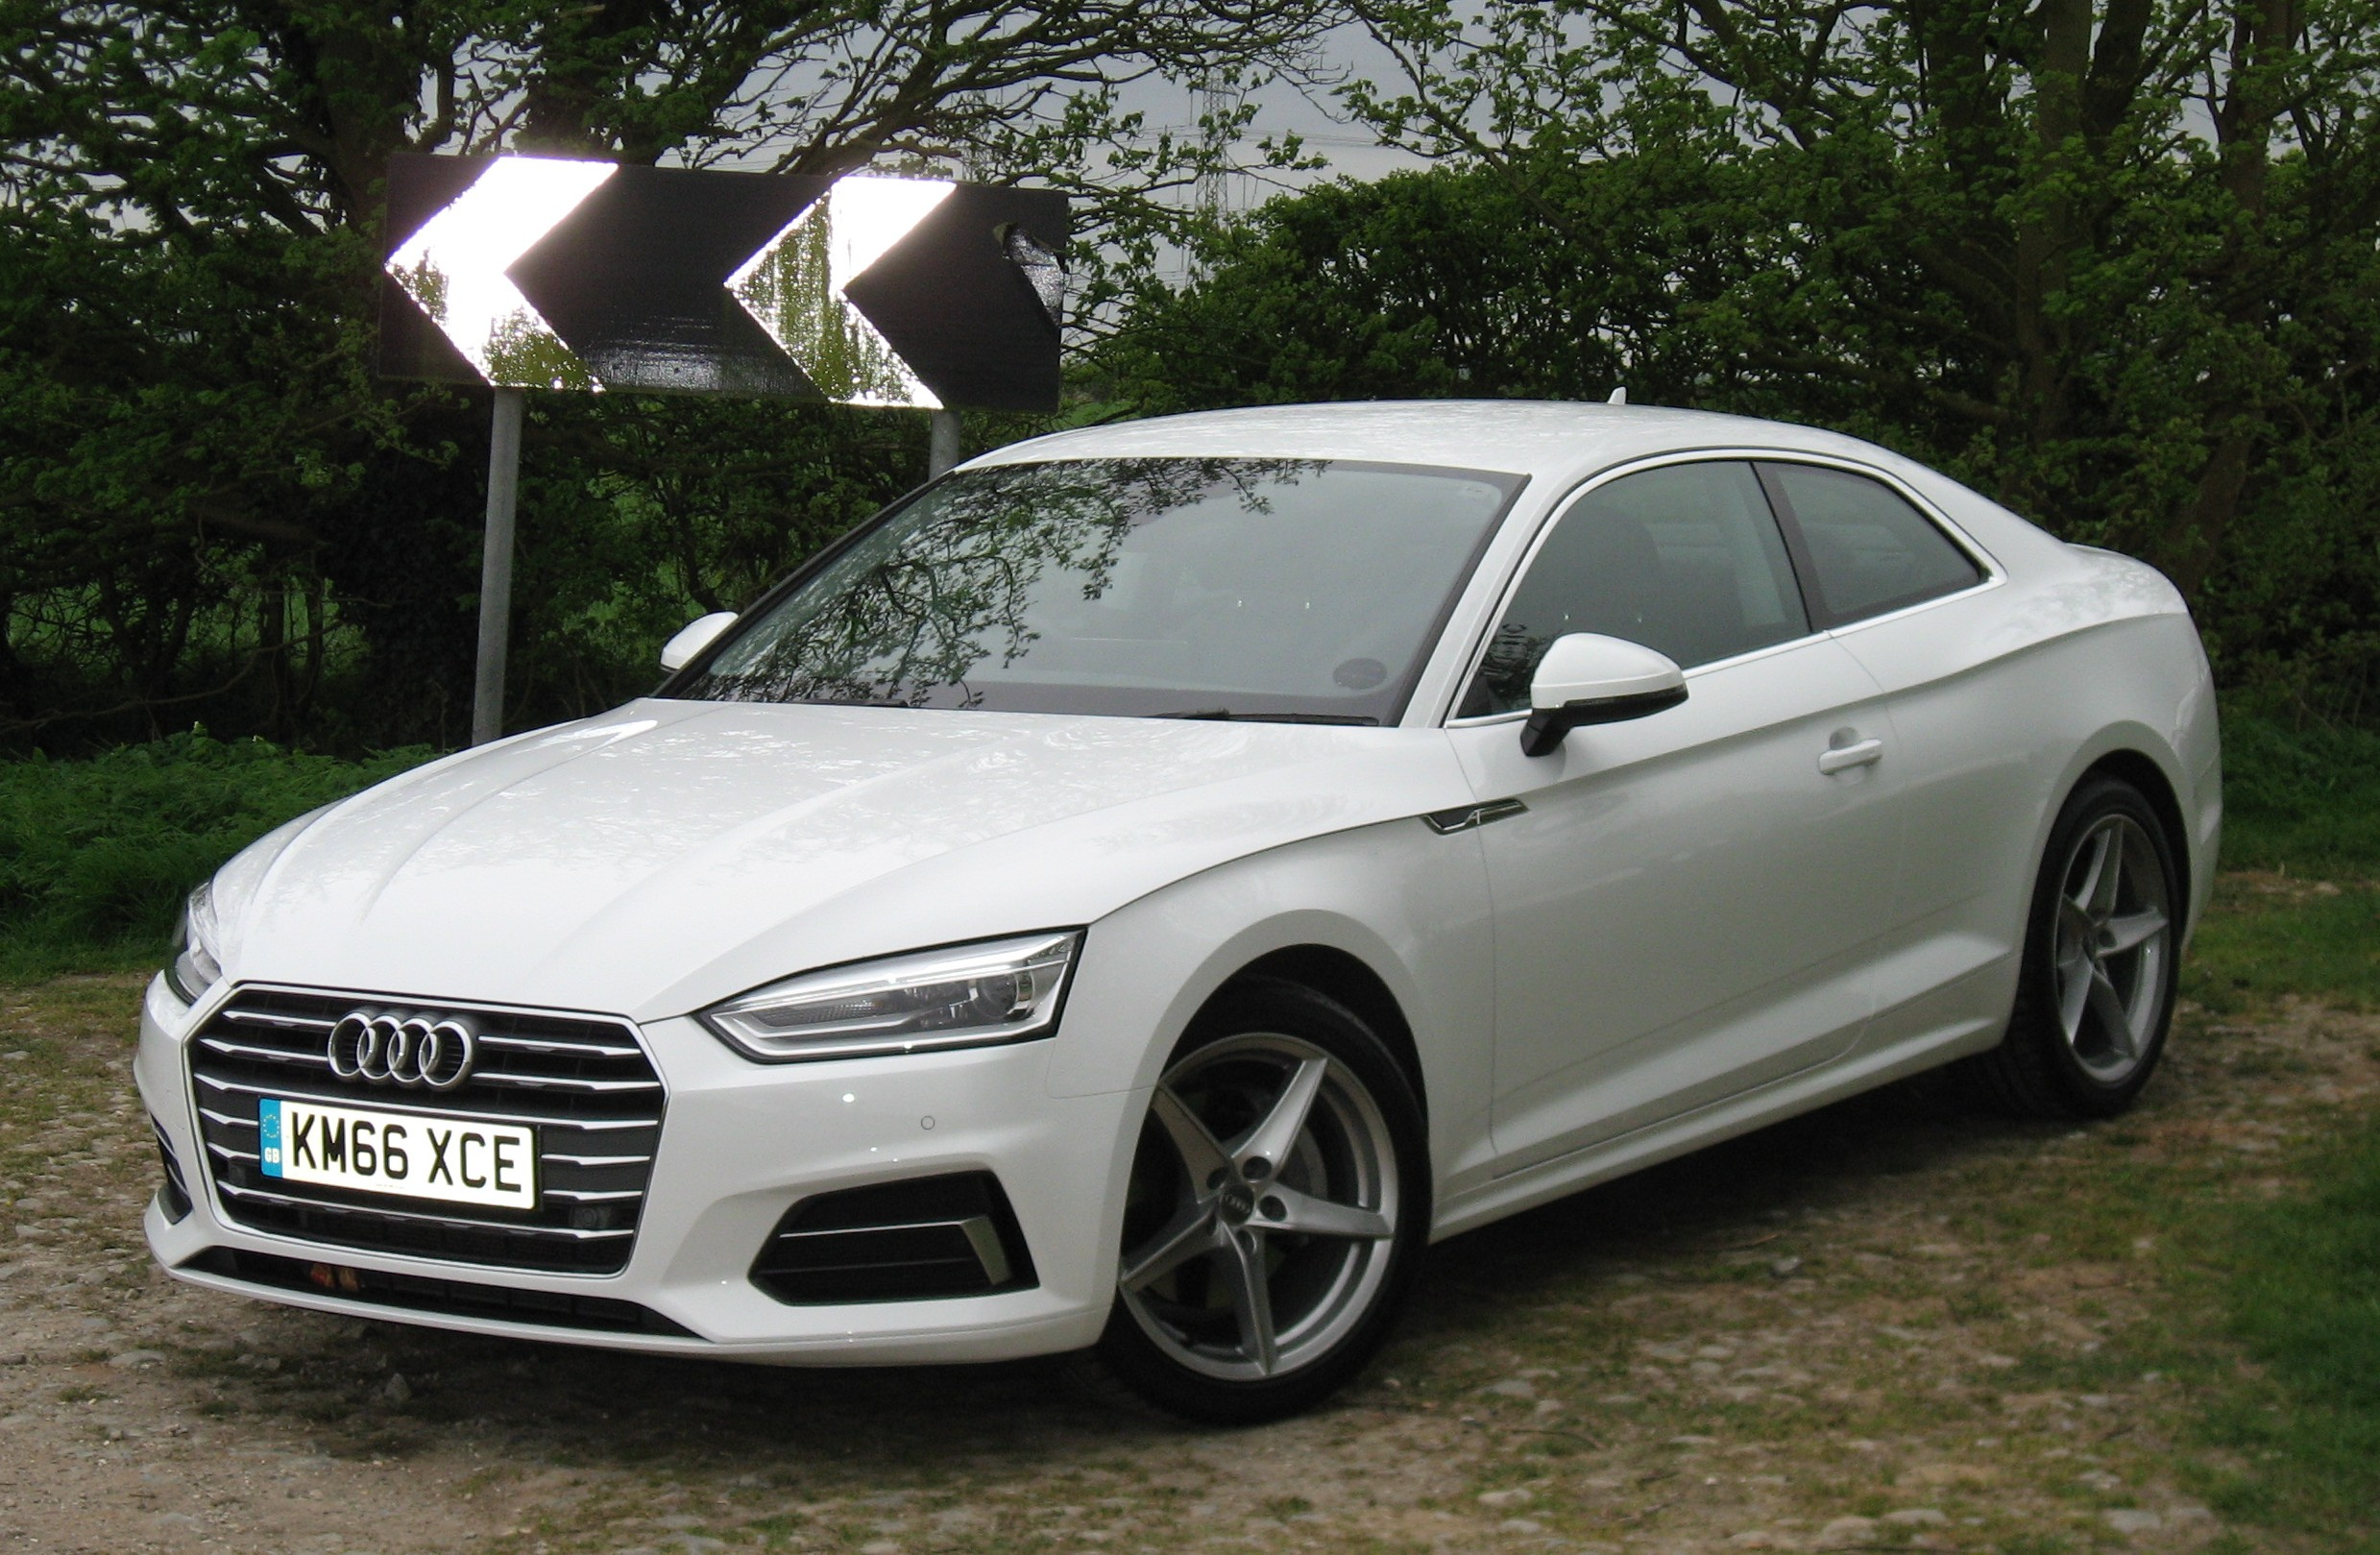 Audi a5 20 tdi 2011 review